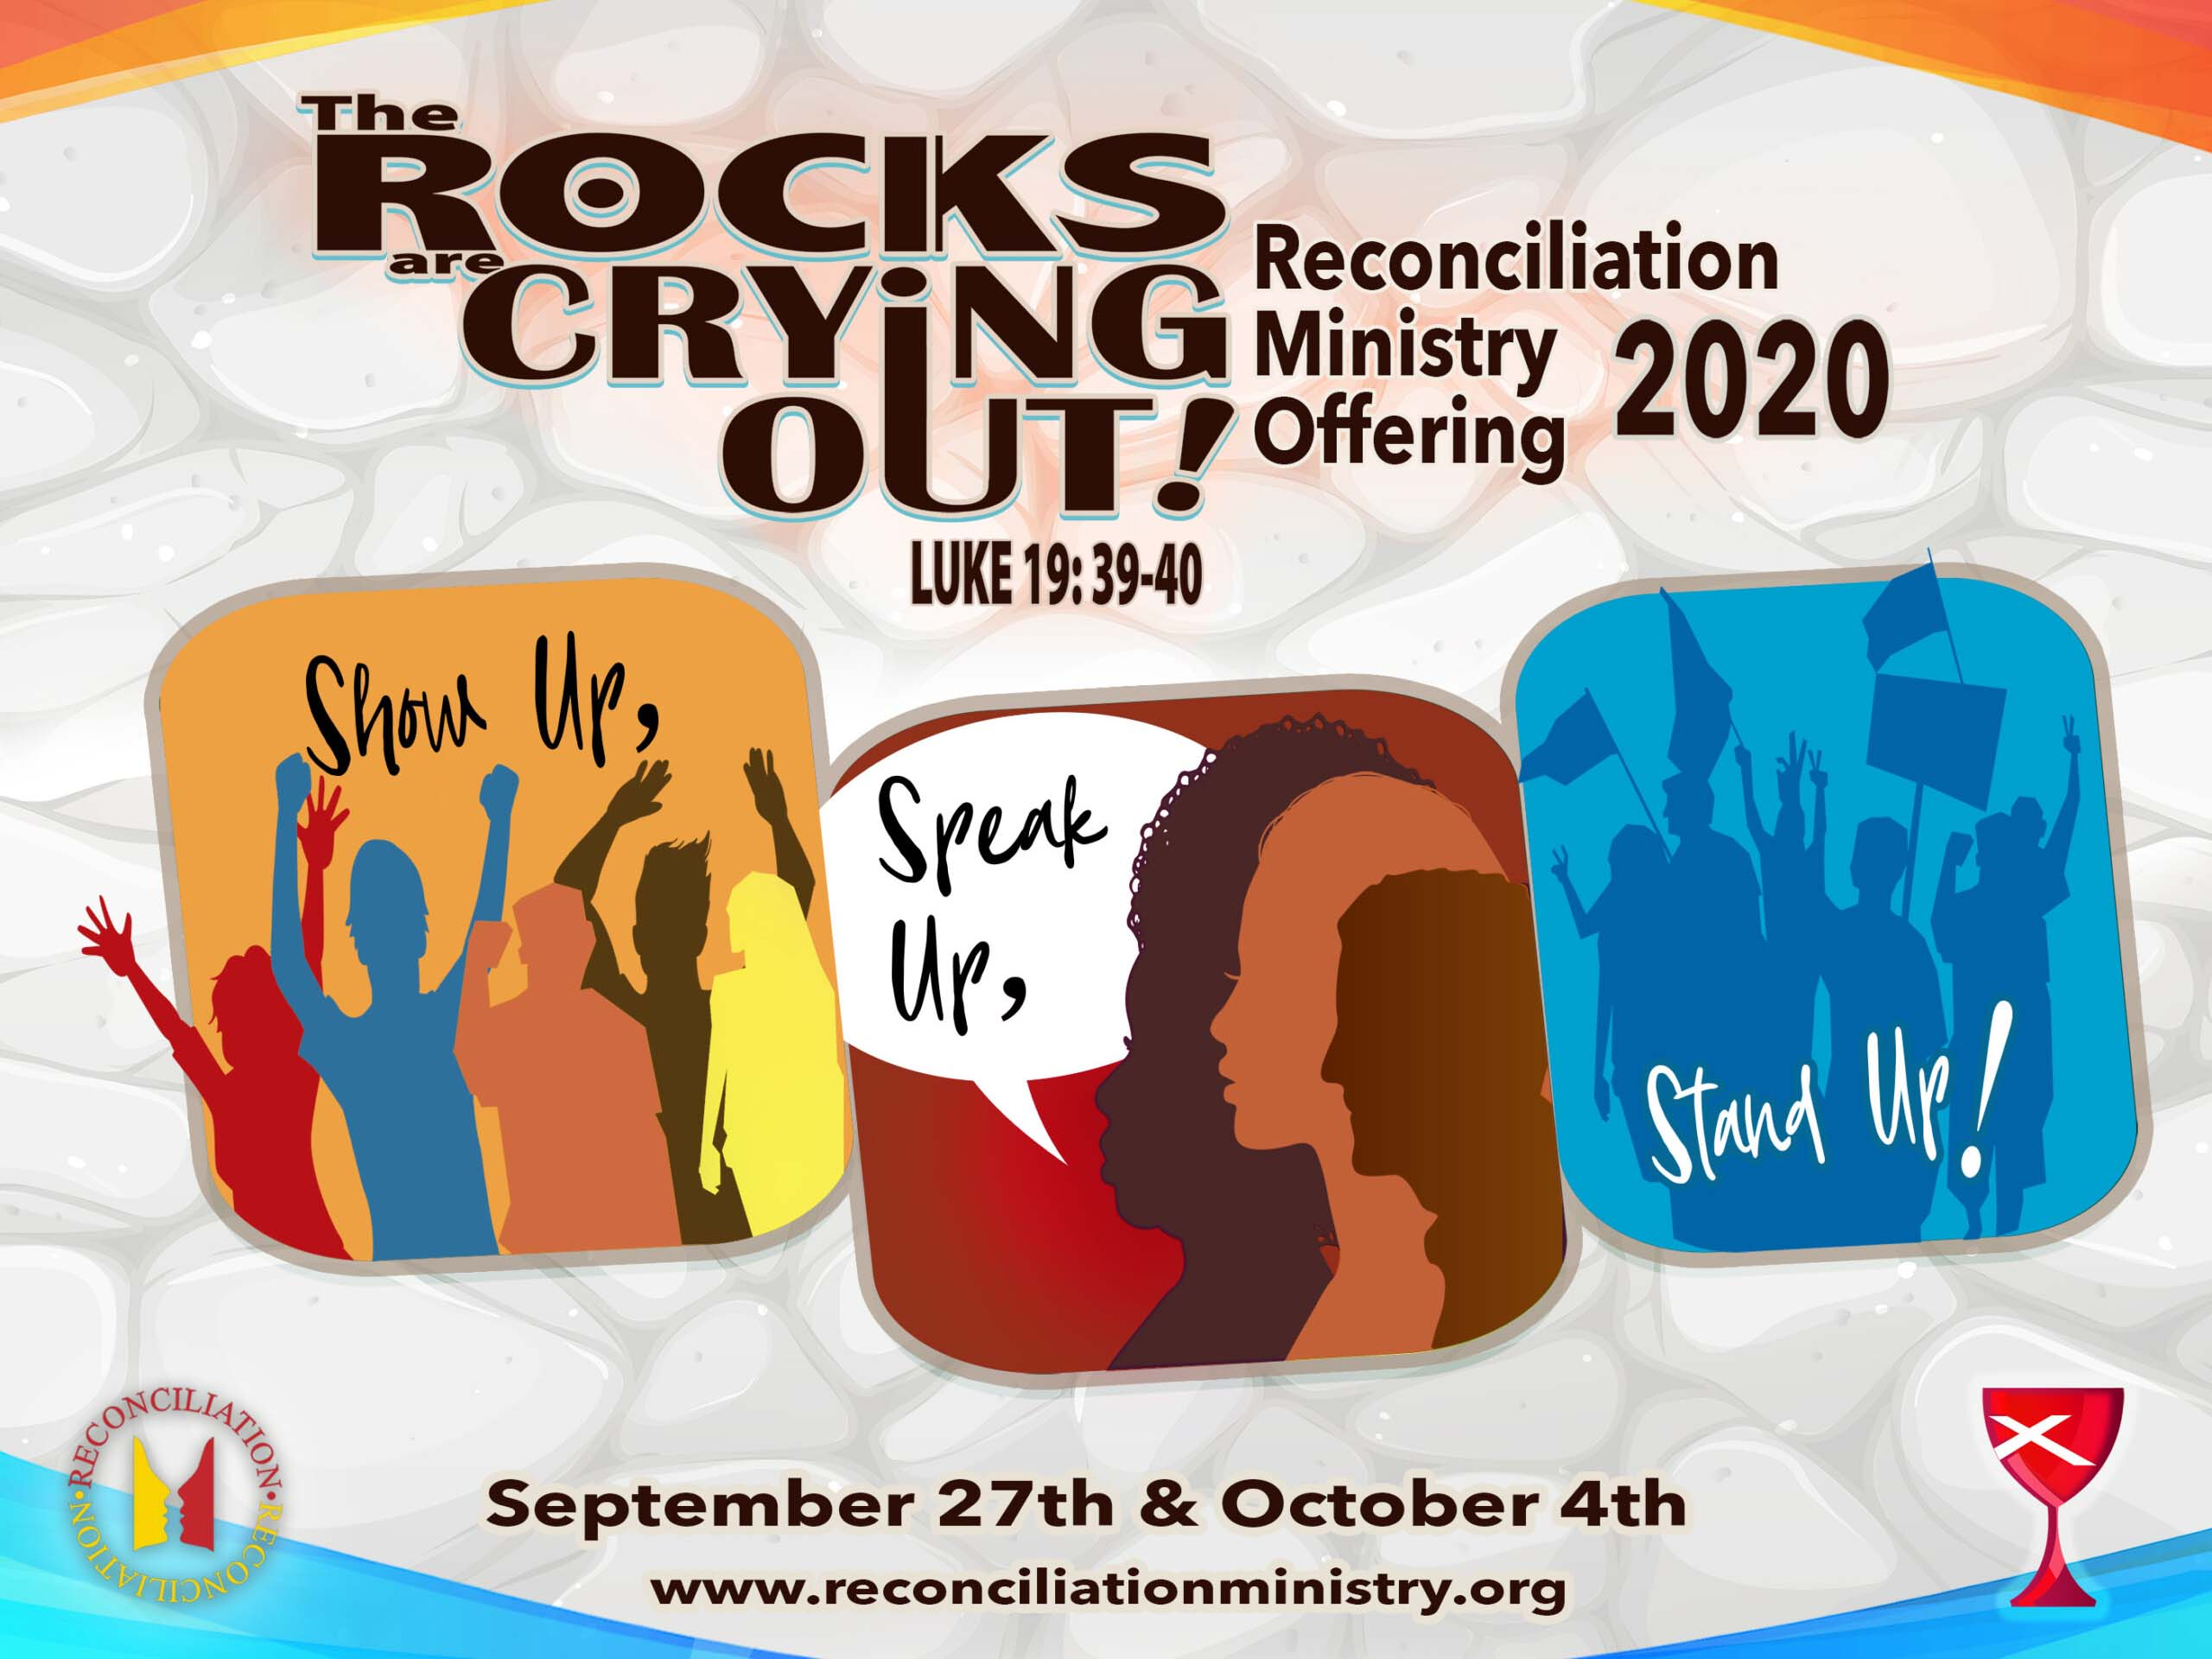 Reconciliation Offering 2020: The Rocks Are Crying Out